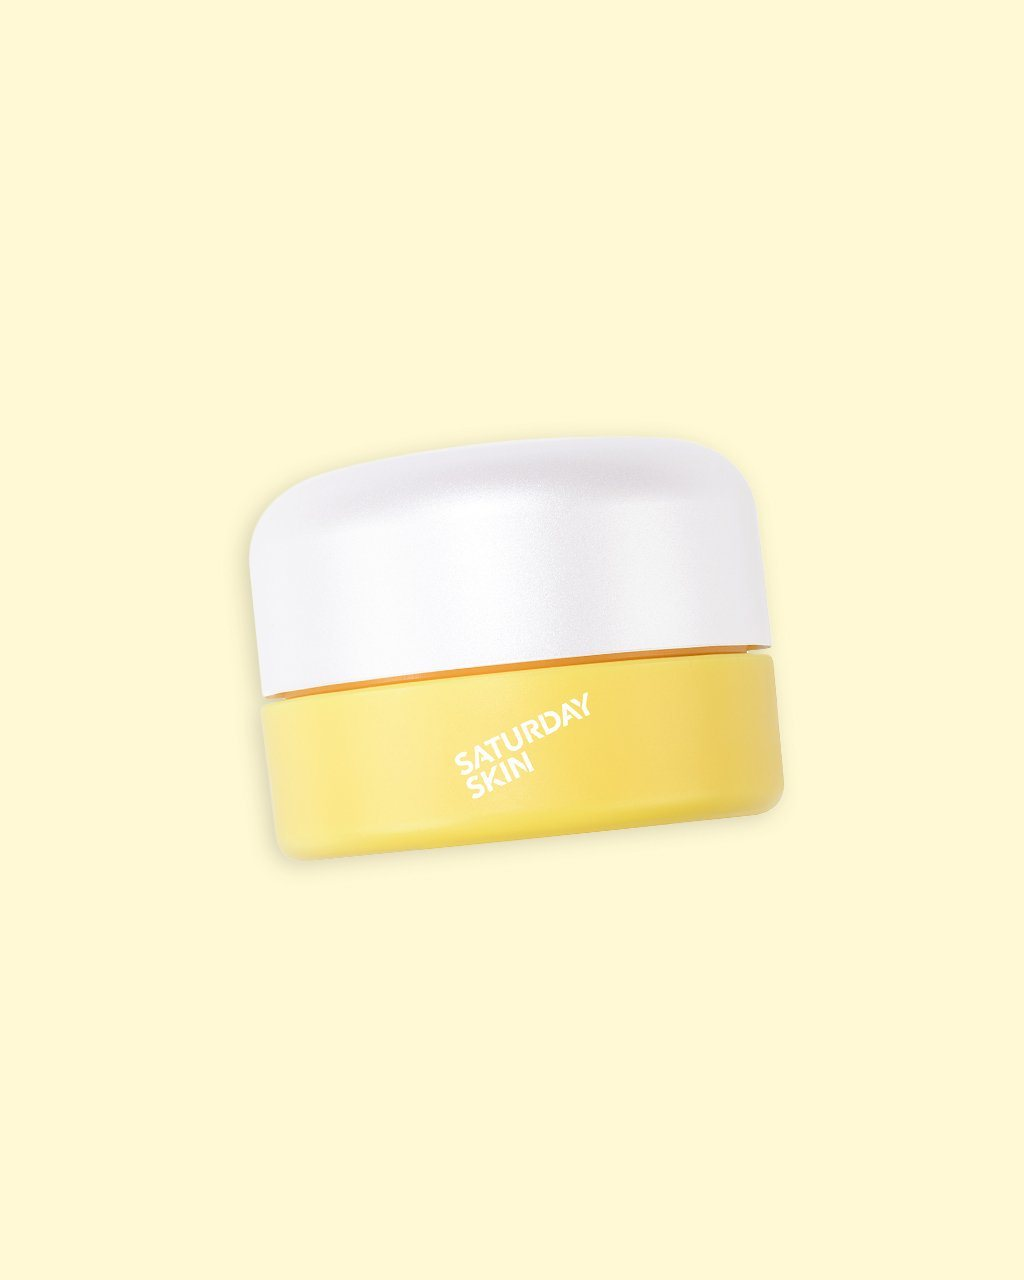 Yuzu Vitamin C Bright Eye Cream Product Image